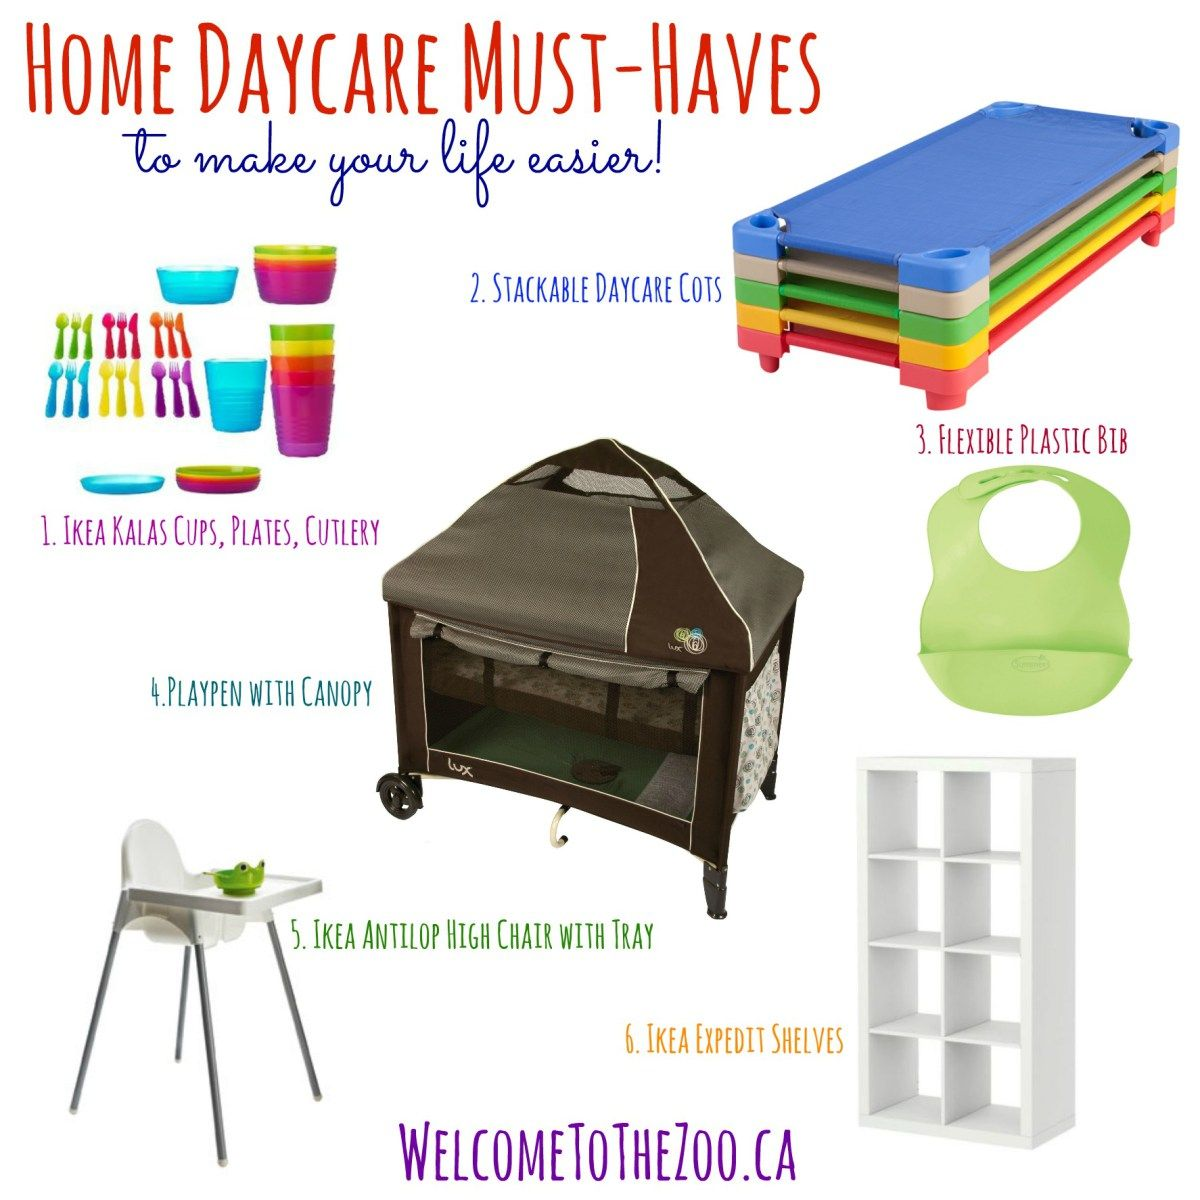 Home Childcare, Home Daycare